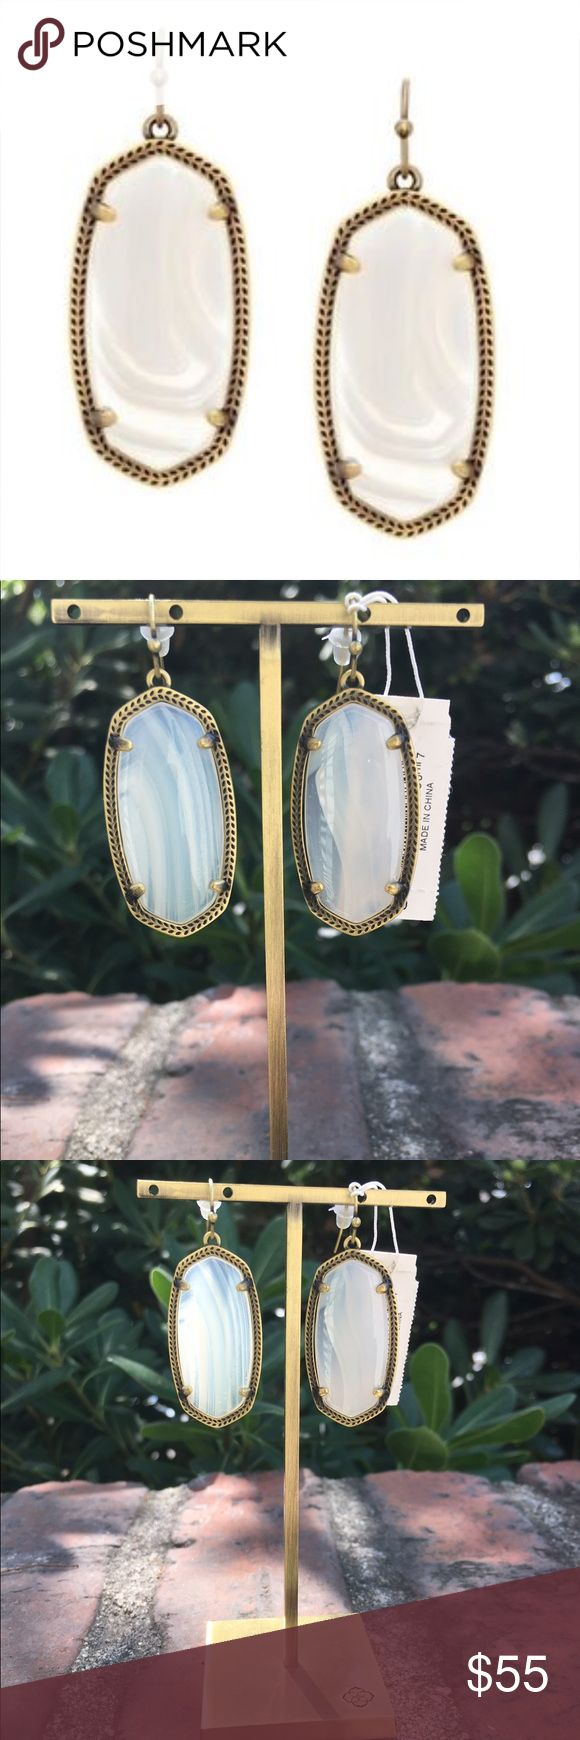 NWT Kendra Scott Elle Earrings Antique Brass NWT Kendra Scott Elle earrings in Antique brass.  No matter what color you choose, these are a perfect match for any outfit! Original jewelry pouch and care card included. Kendra Scott Jewelry Earrings